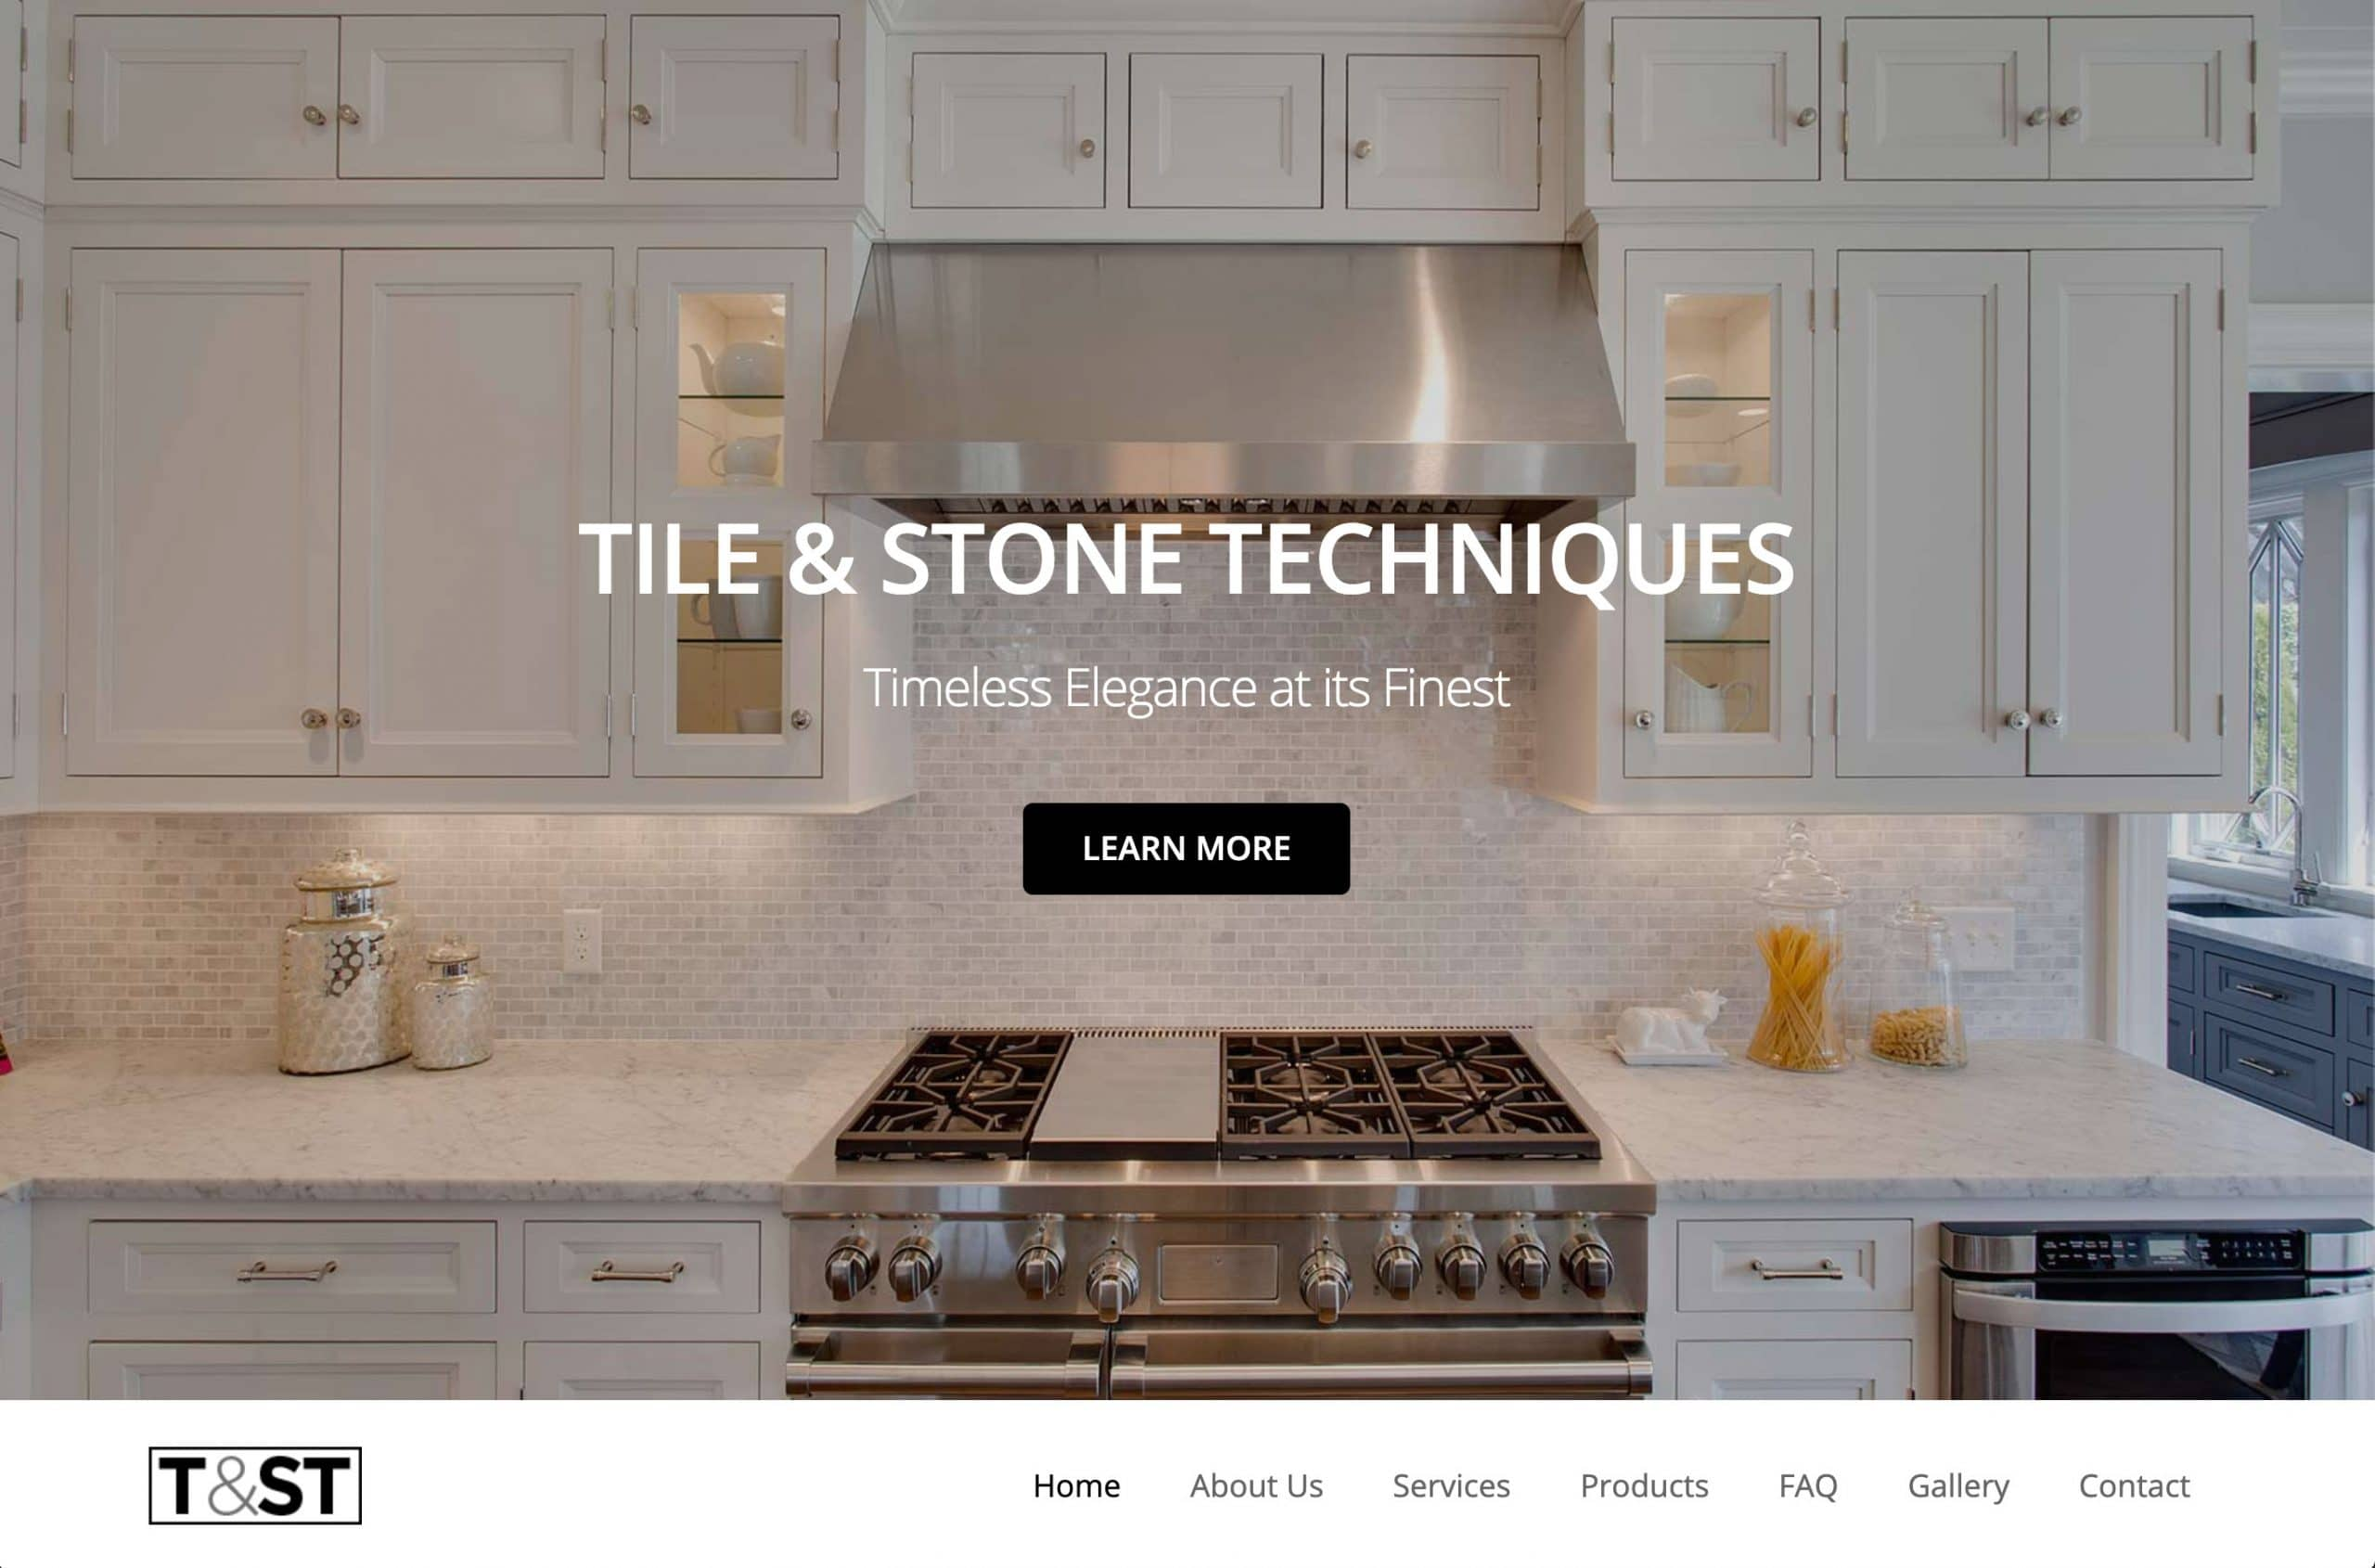 Tile & Stone Techniques Website